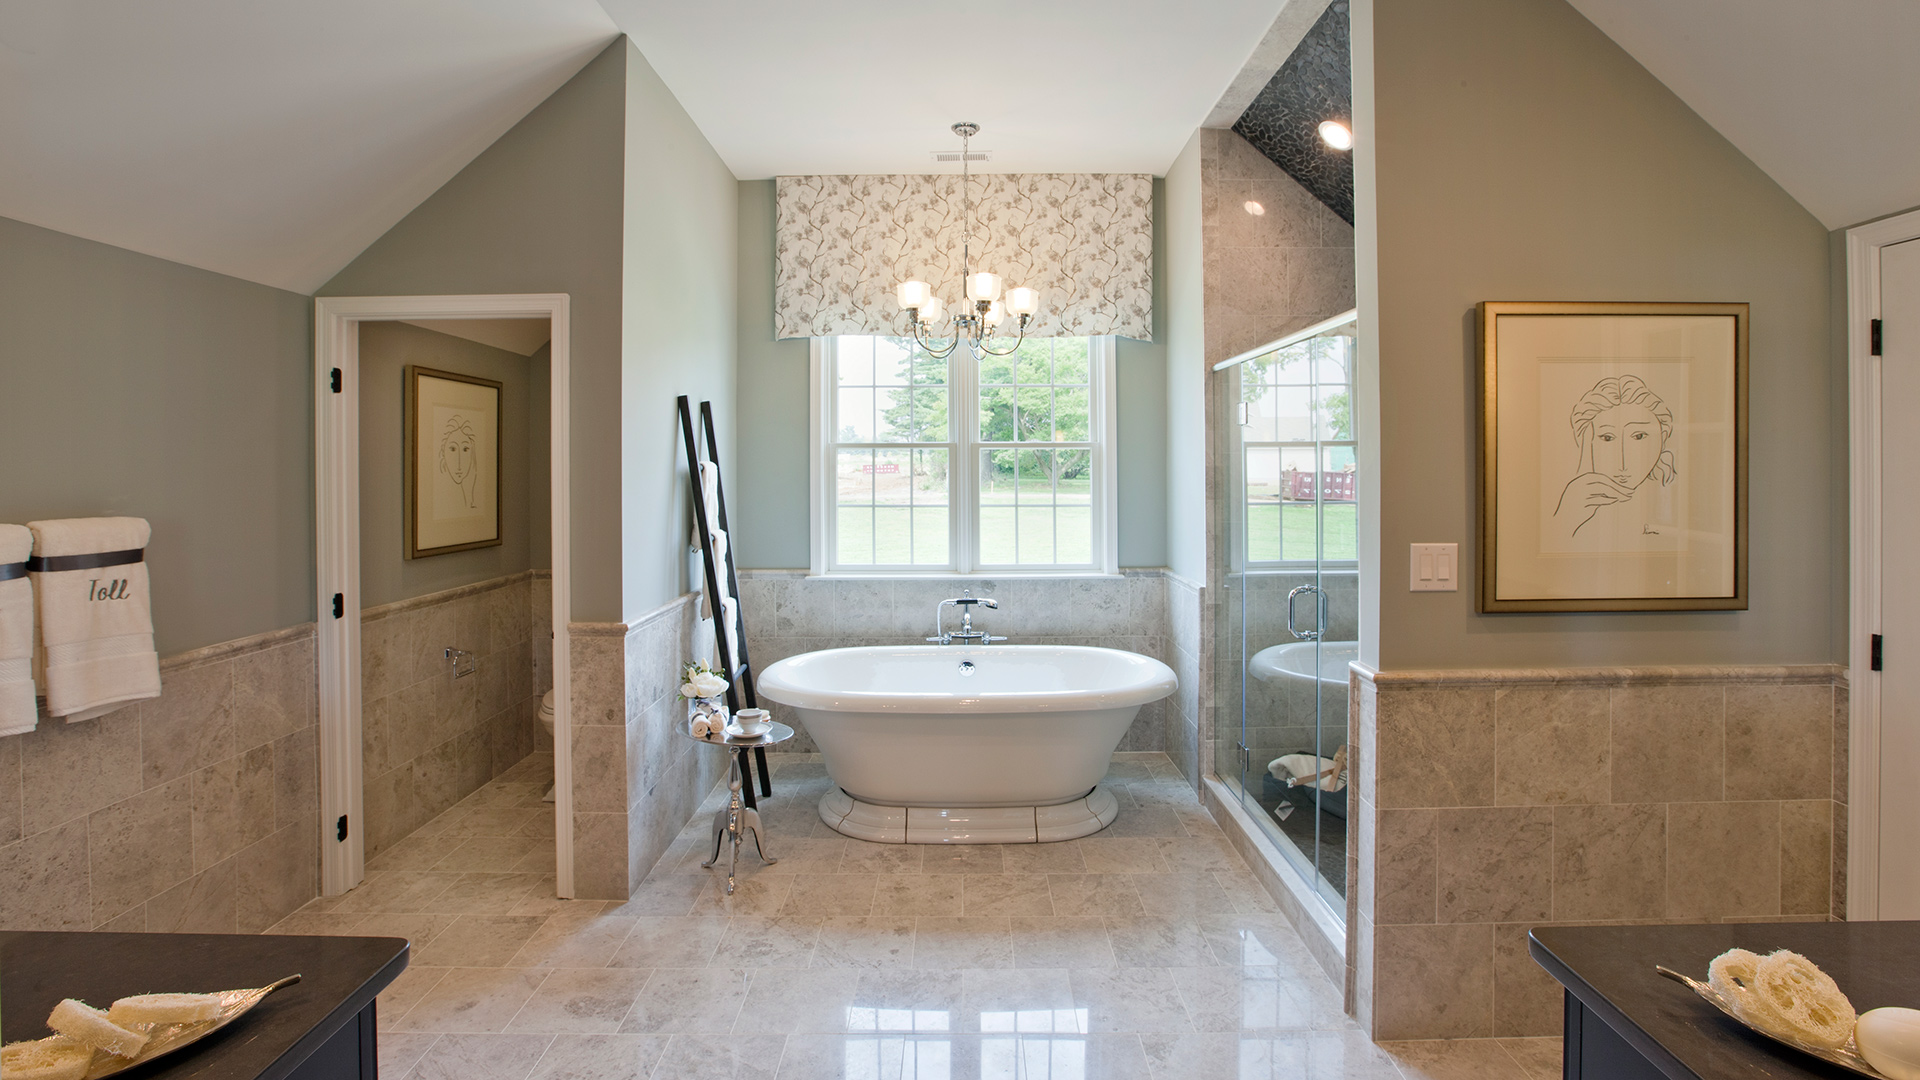 Bathroom Model Of The Duke Home Design Available In Newtown Square, PA